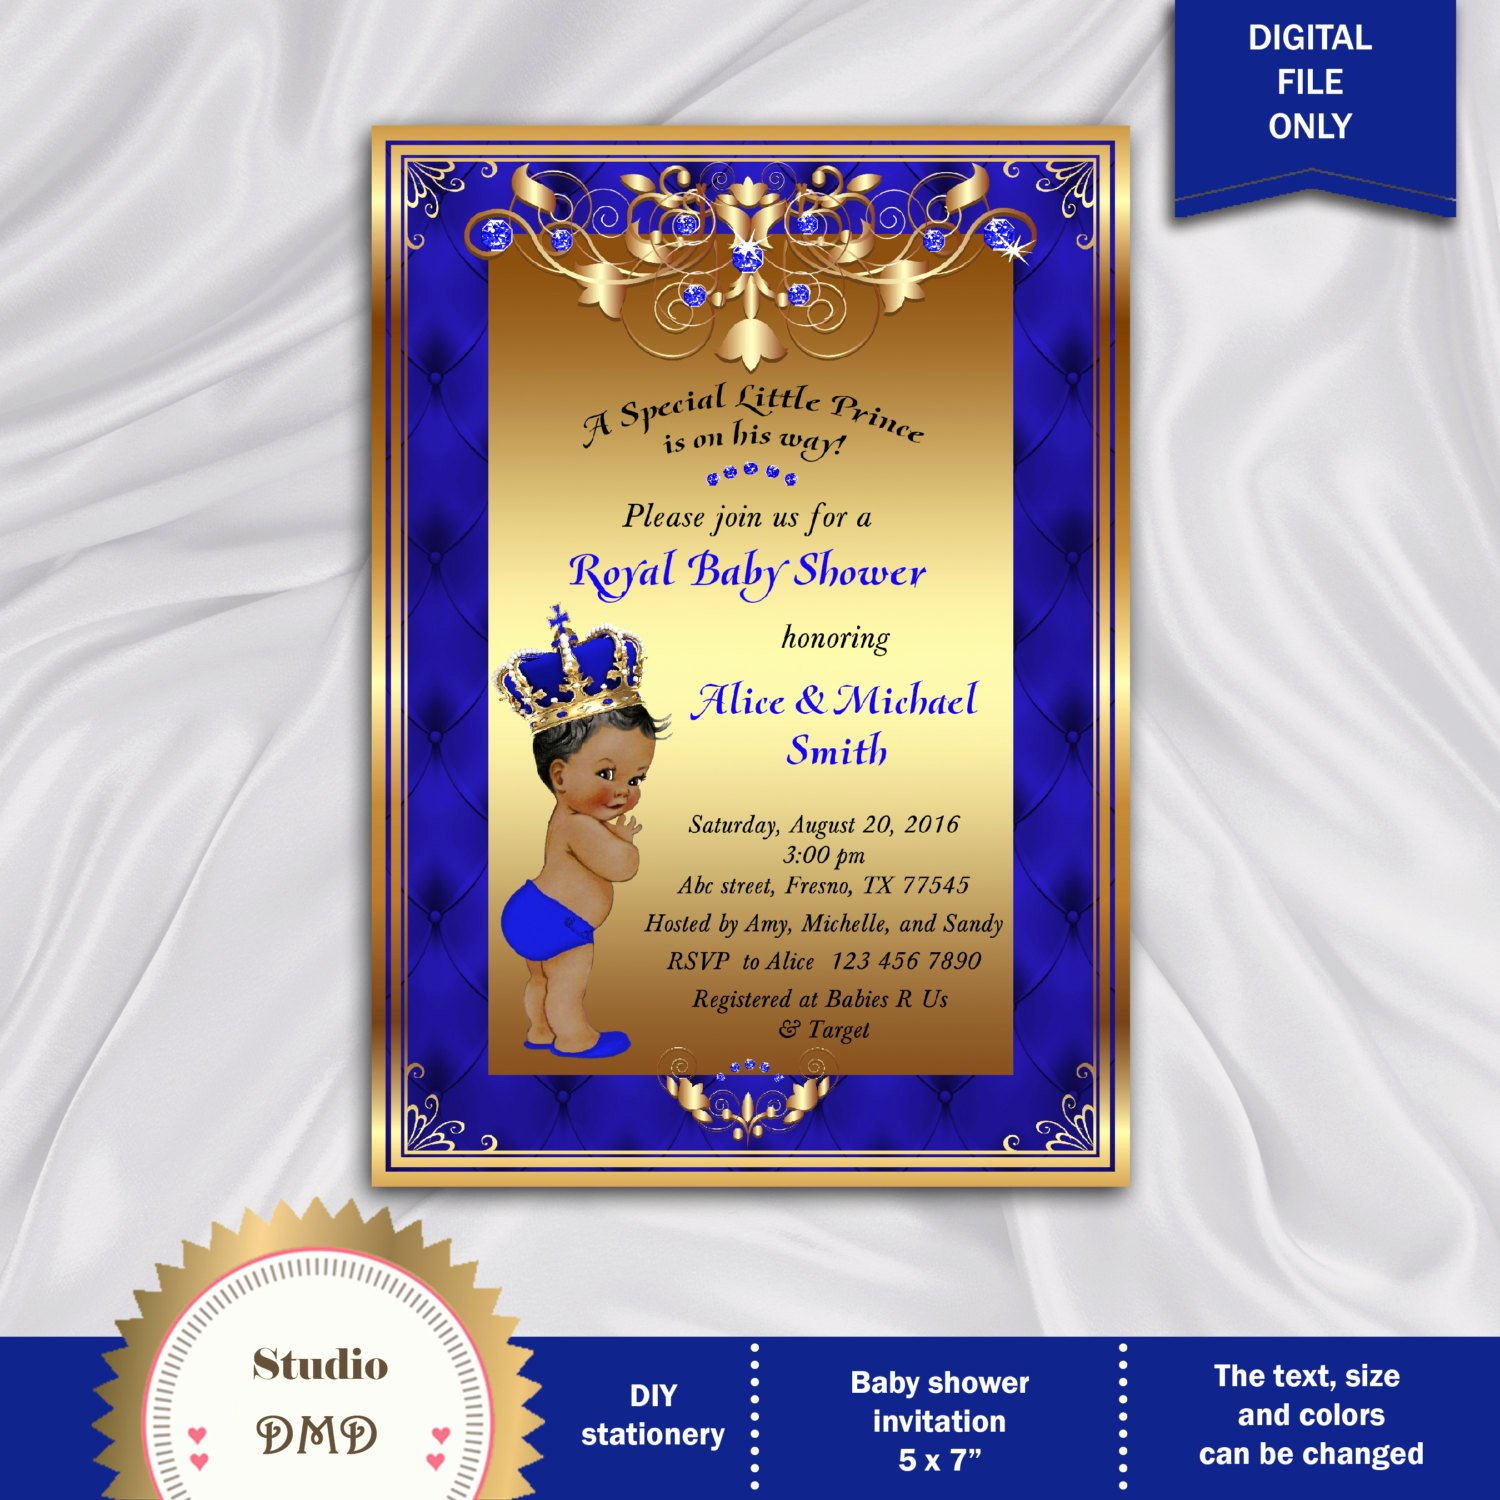 Royal Baby Shower Invitations Elegant Prince Baby Shower Invitation Little Prince Royal Baby Boy